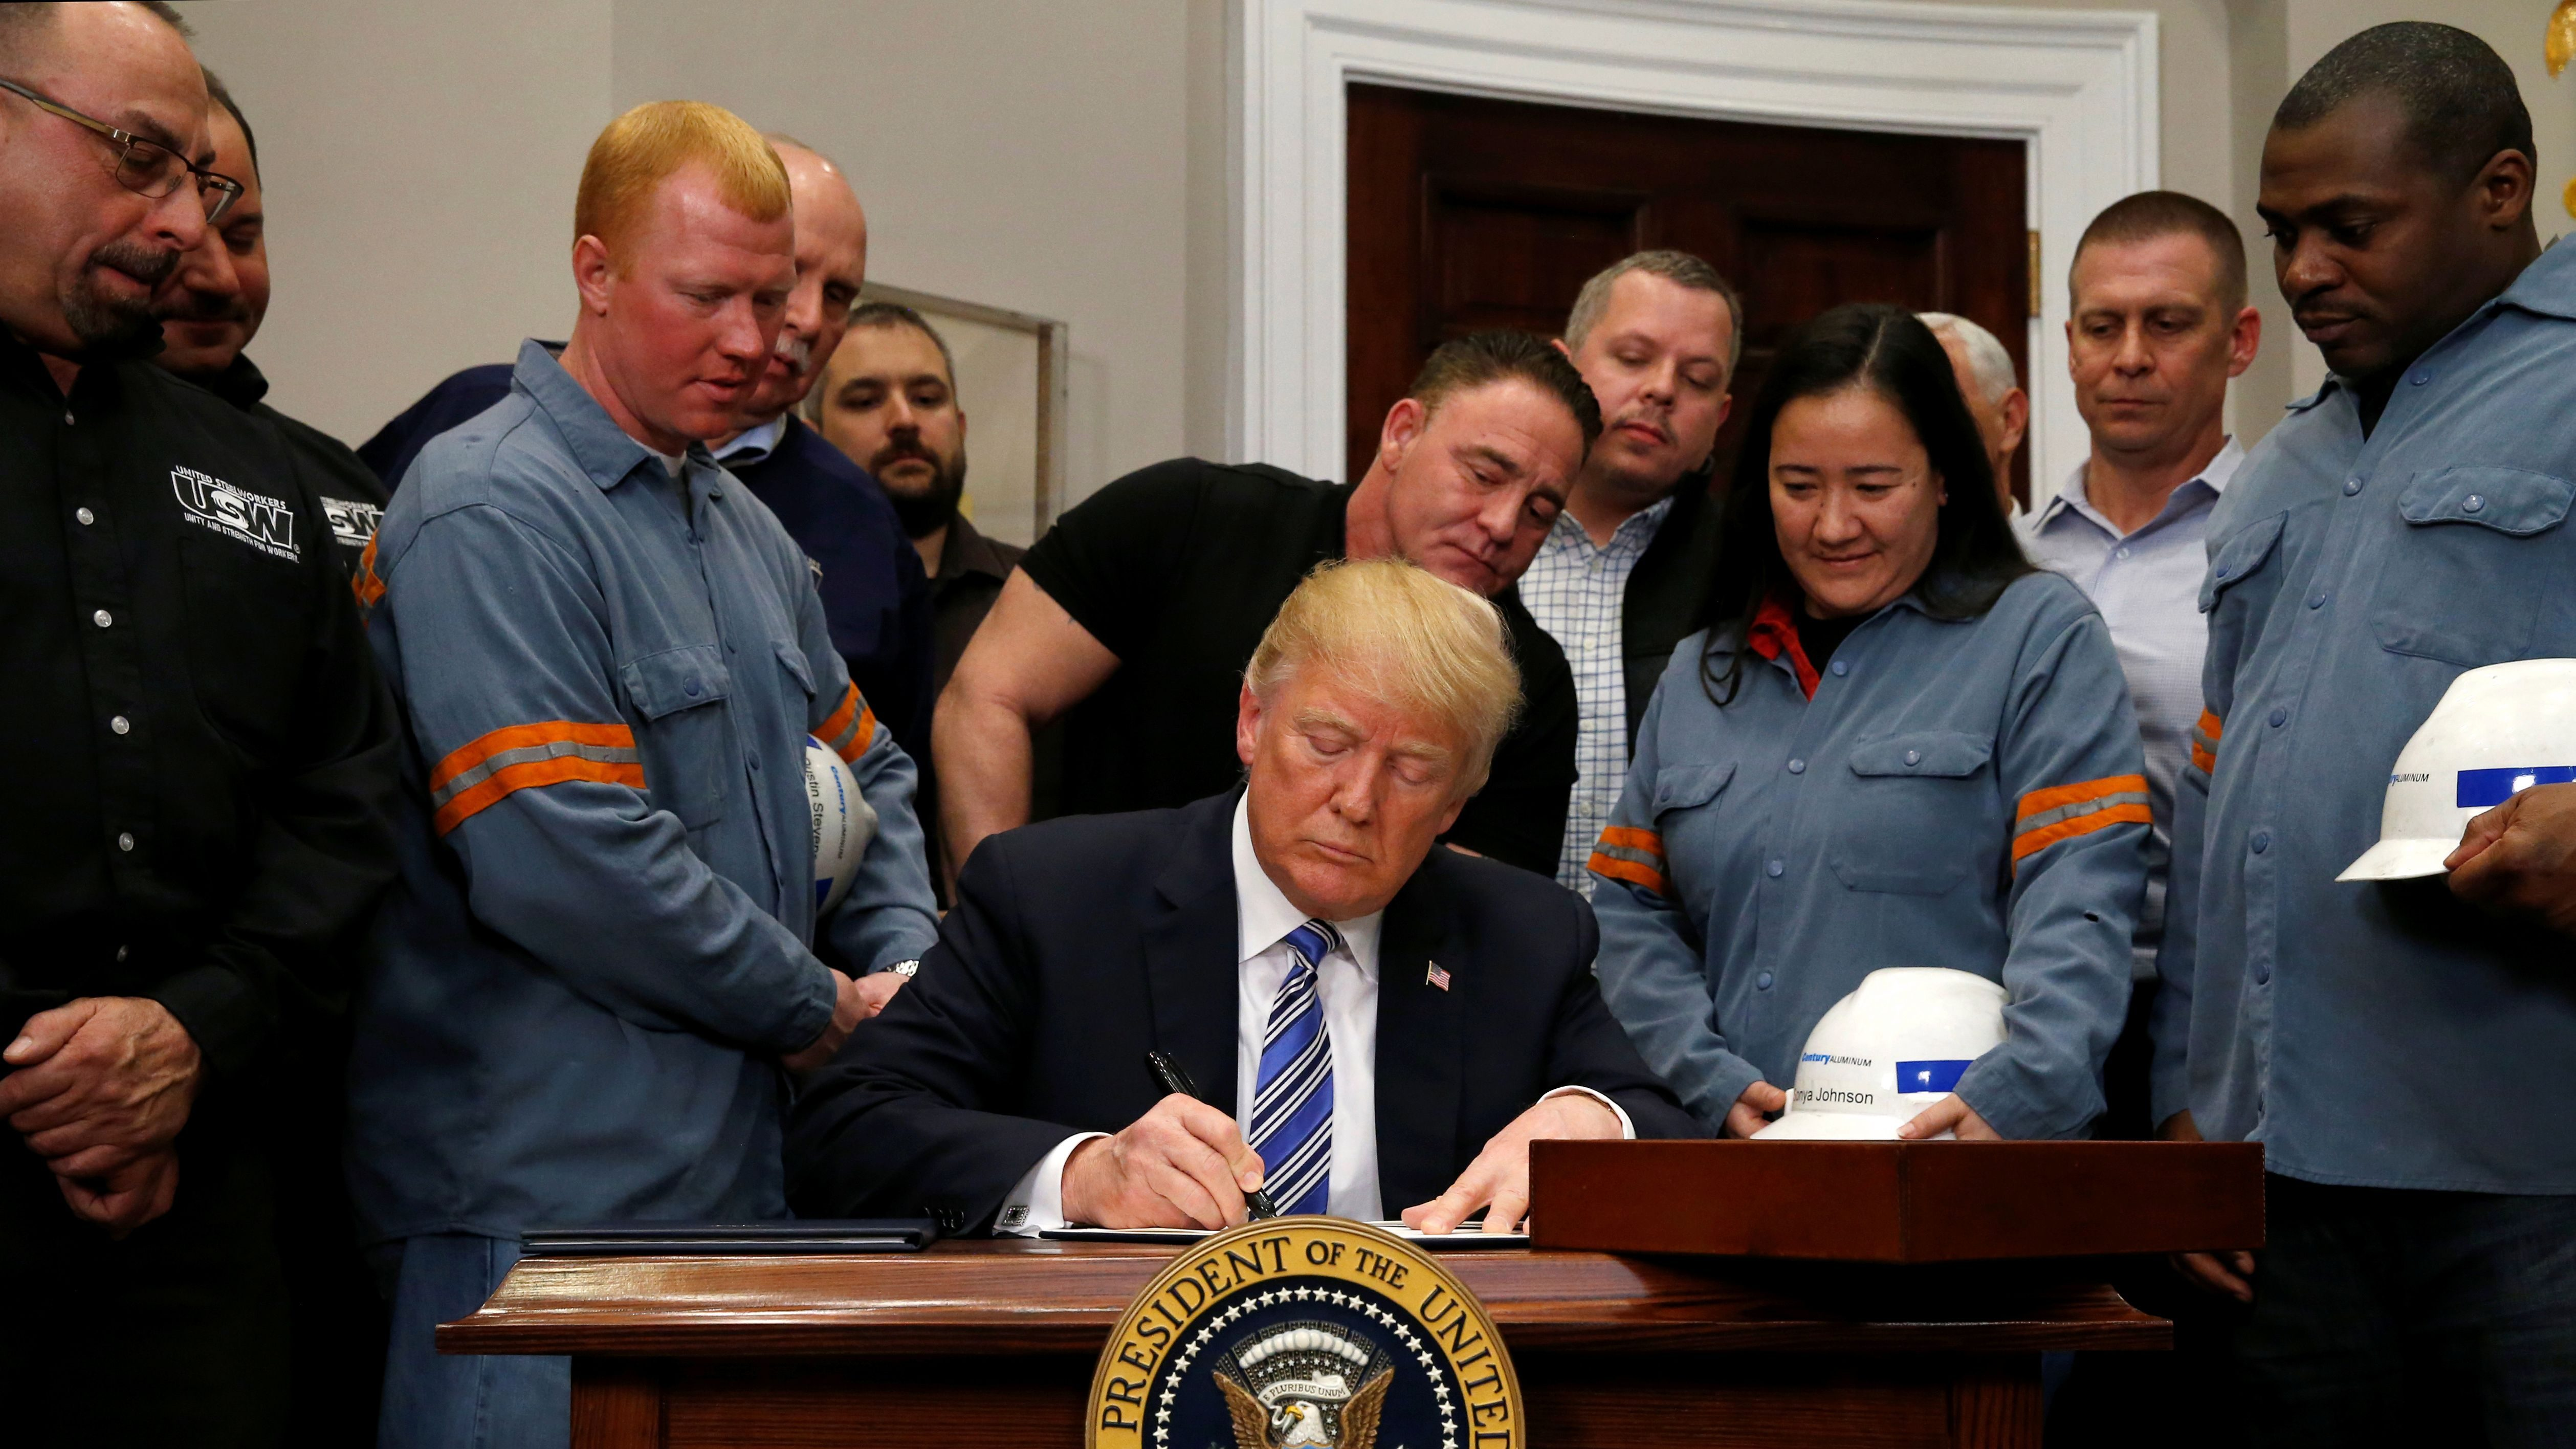 U.S. President Donald Trump signs a presidential proclamation placing tariffs on steel and aluminum imports while surrounded by workers